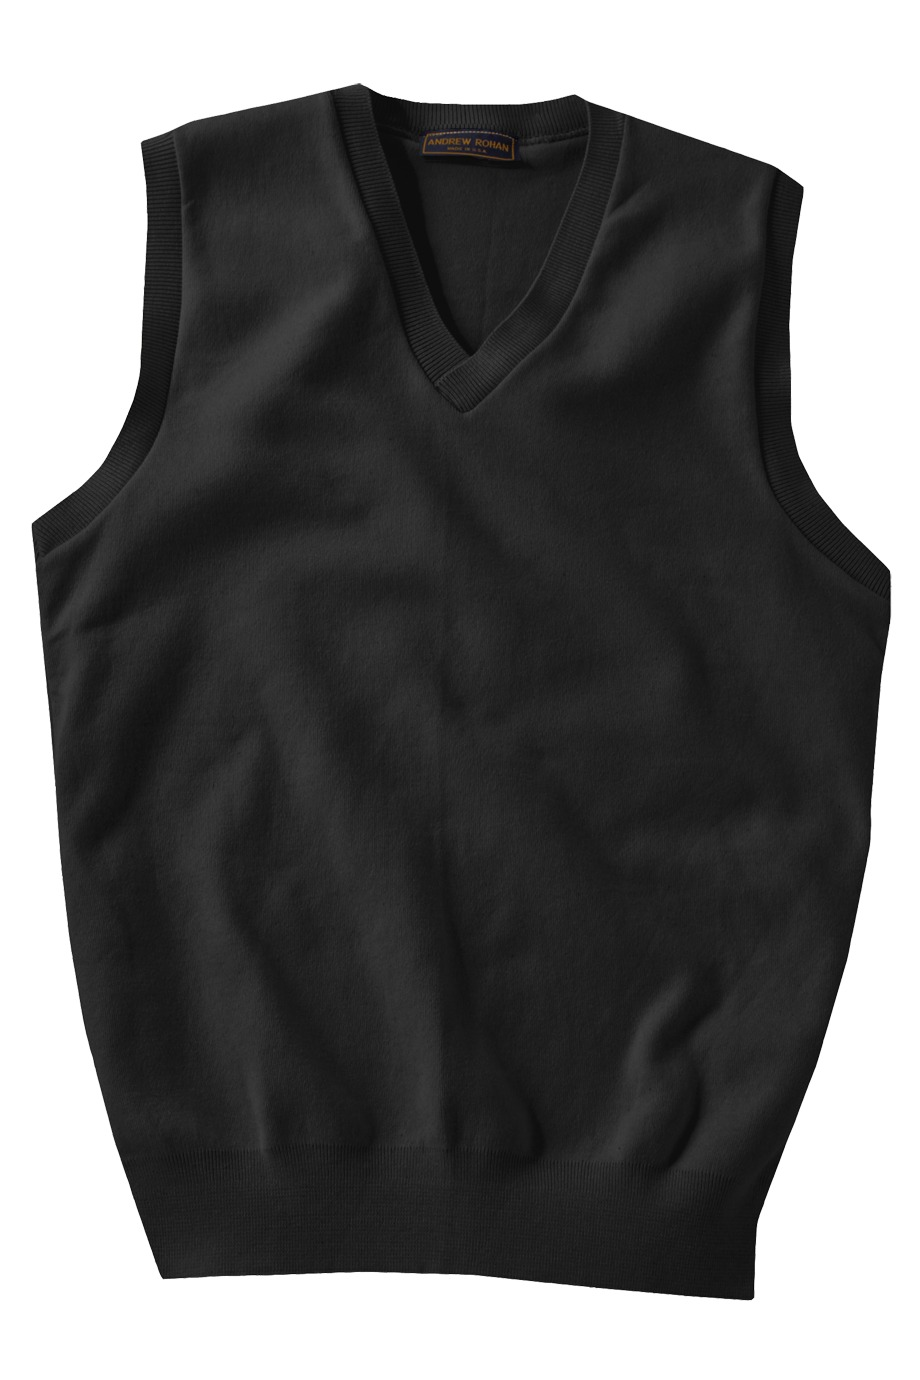 MLE701-RELATED- Mens Sweater Vest-